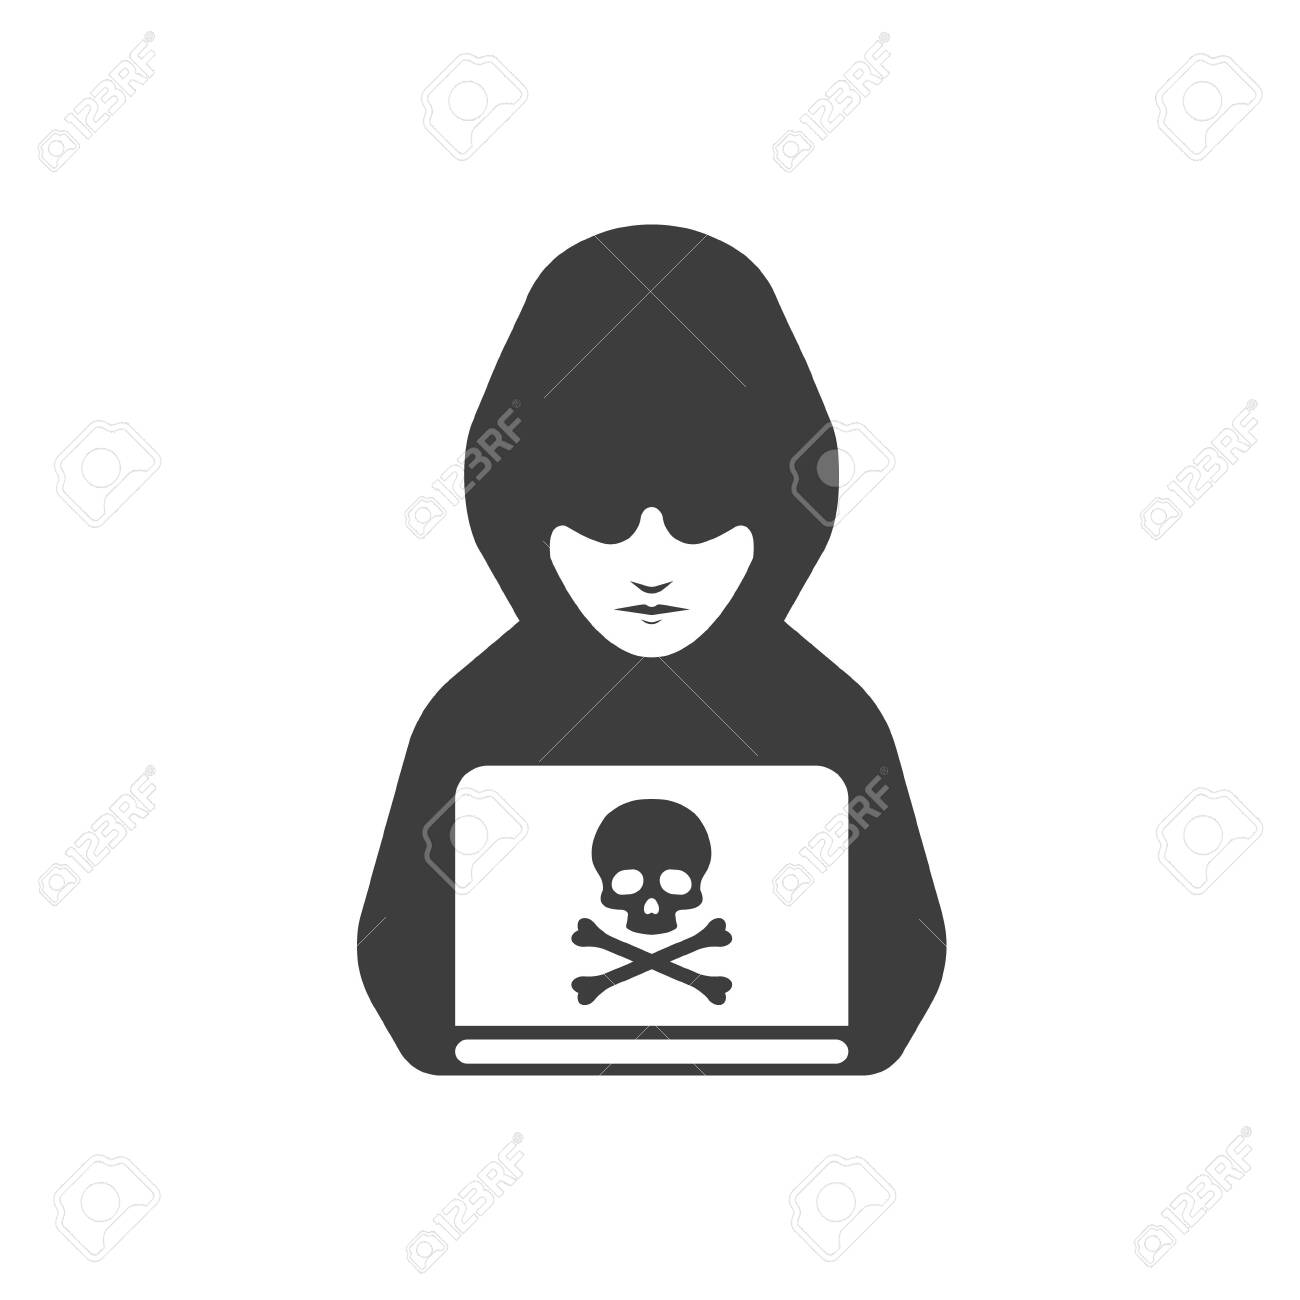 black icon of anonymous hacker vector illustration royalty free cliparts vectors and stock illustration image 135393574 black icon of anonymous hacker vector illustration